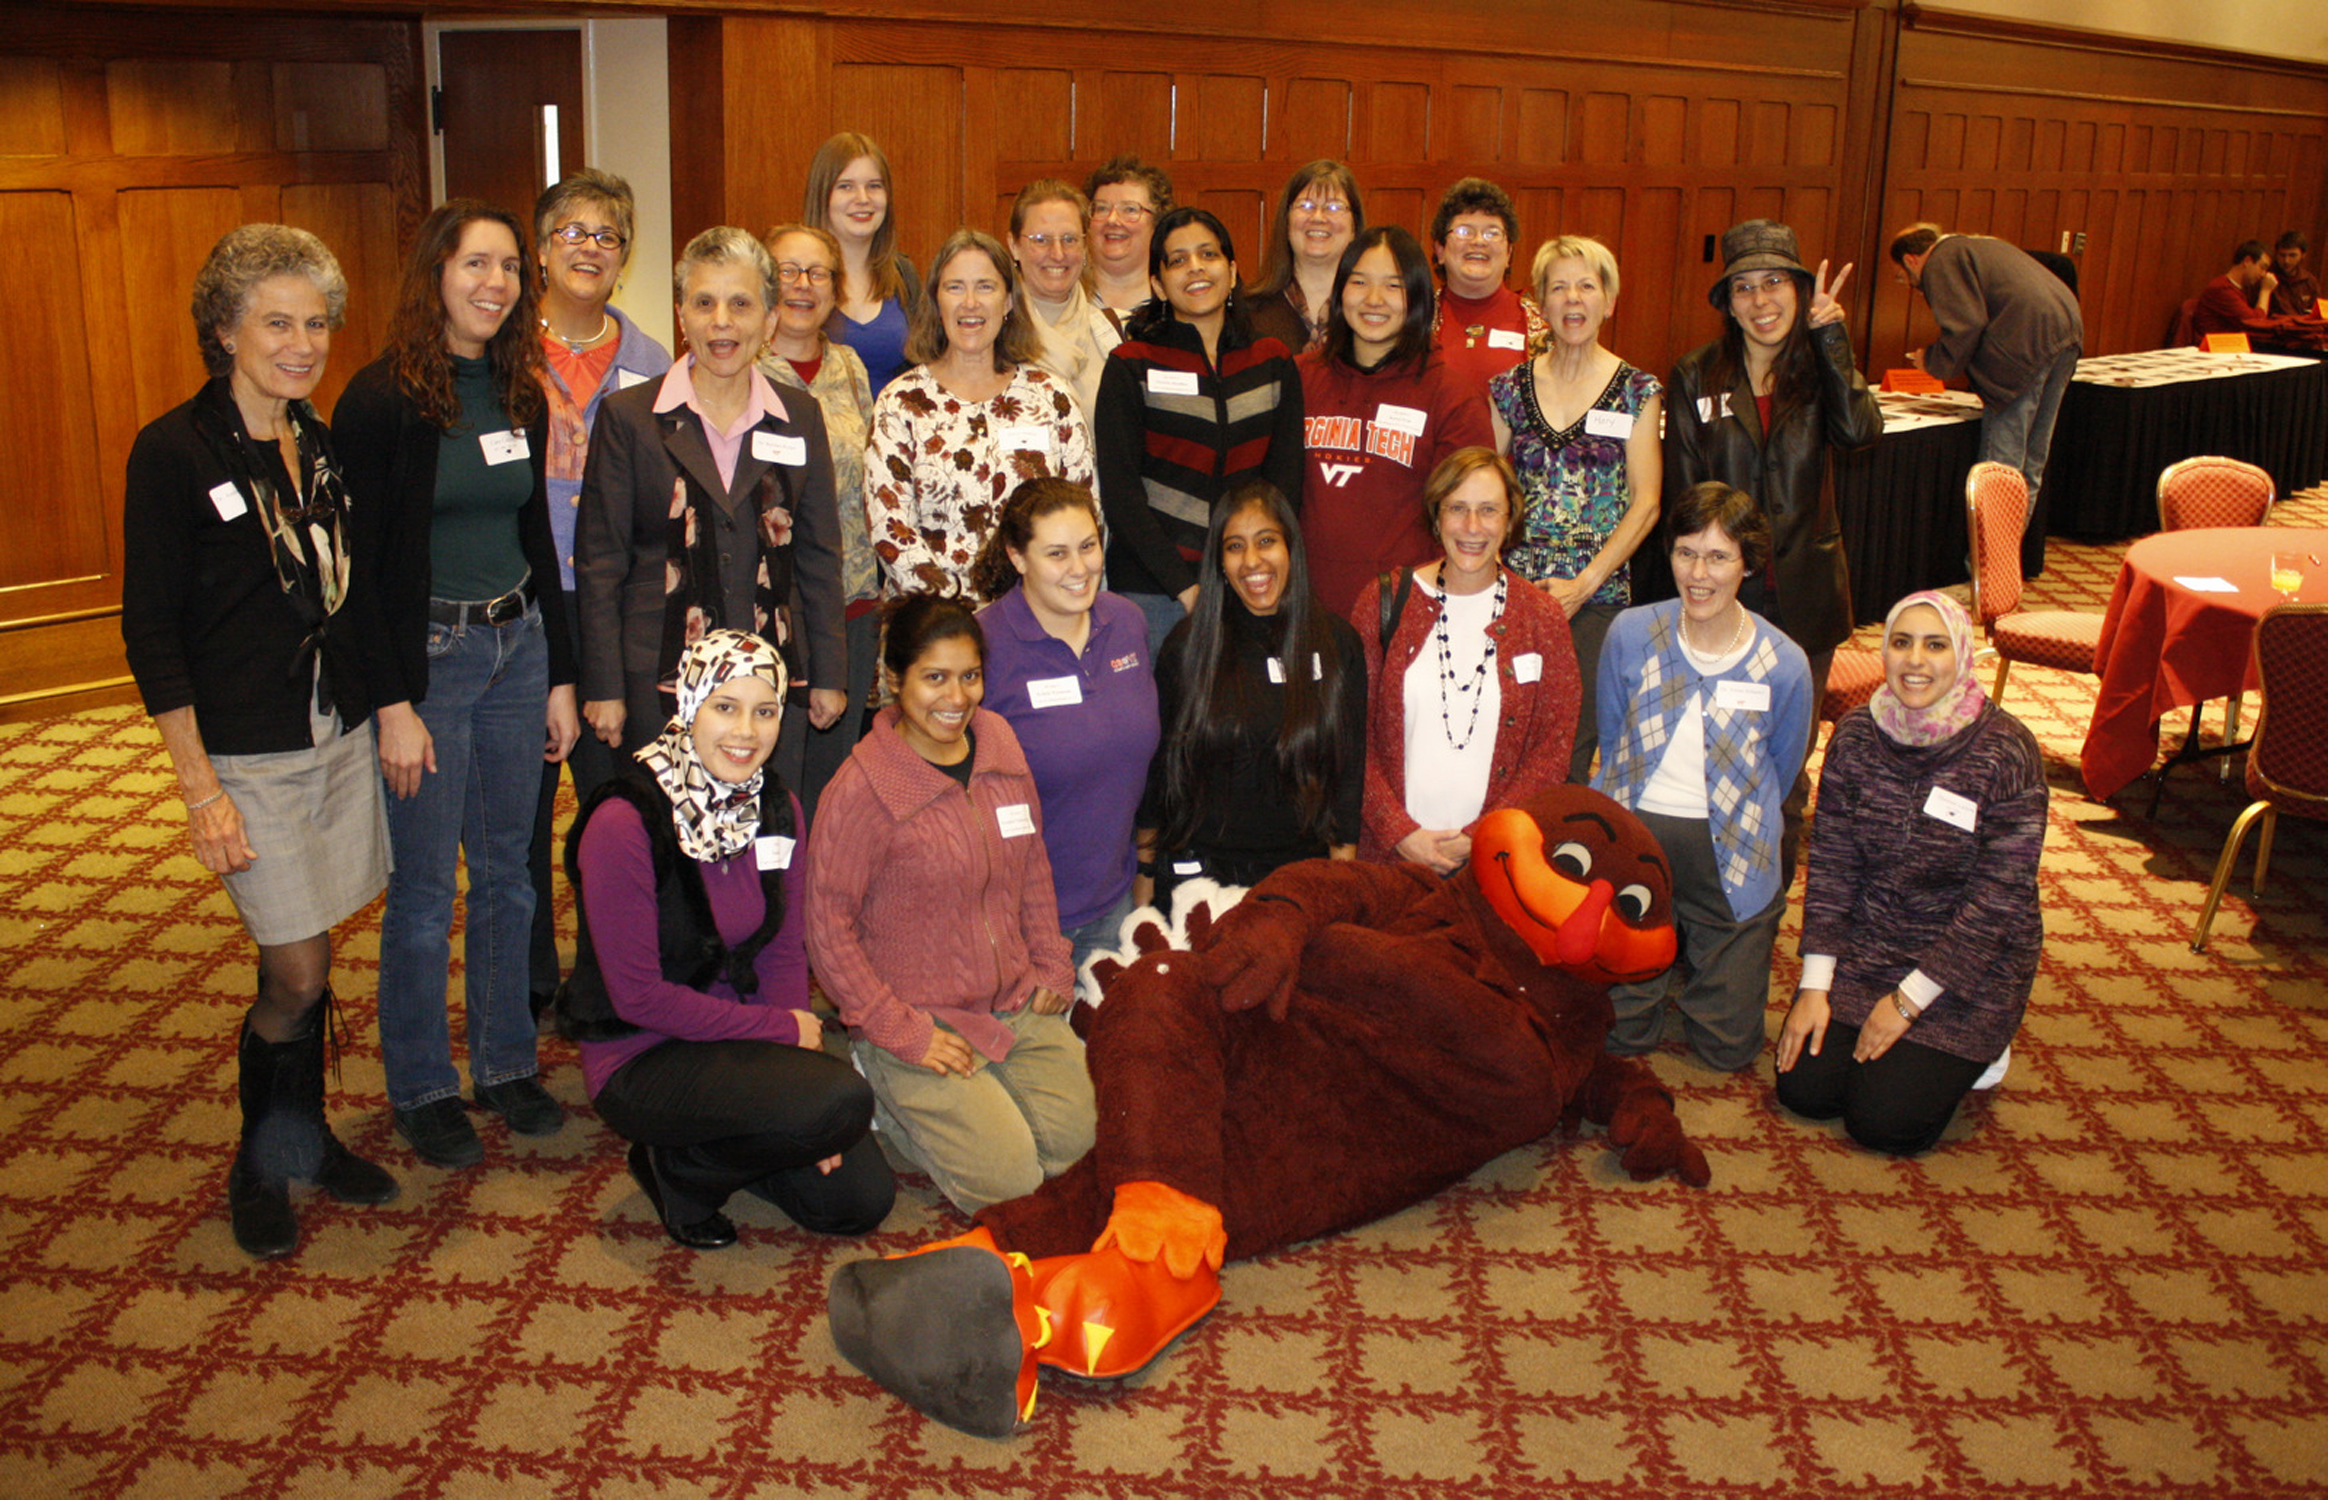 Computer science female students and graduates with Hokie bird